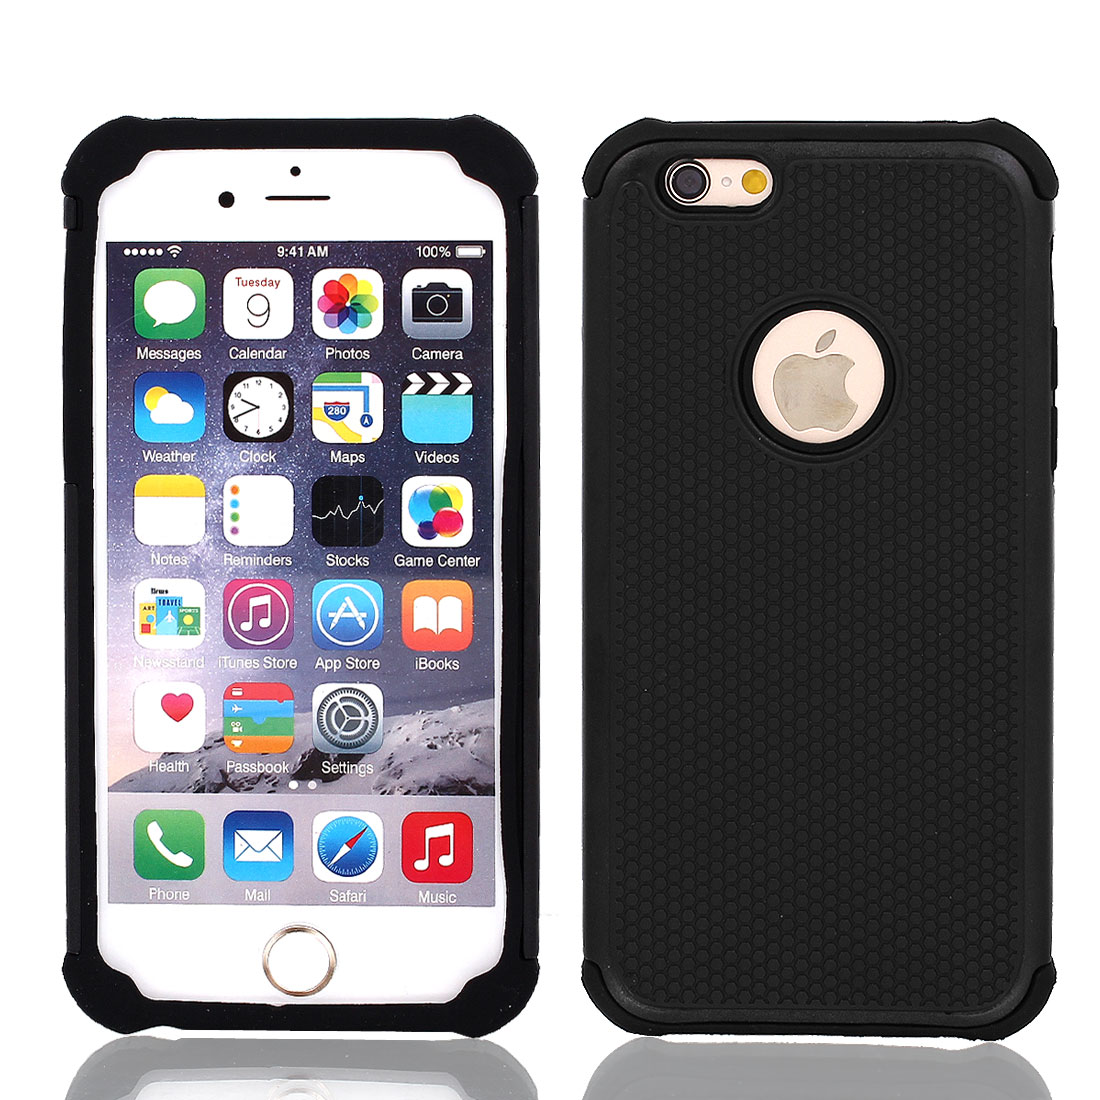 Shockproof Hybrid Builder Cover Silicone Case Black for iPhone 6 4.7""